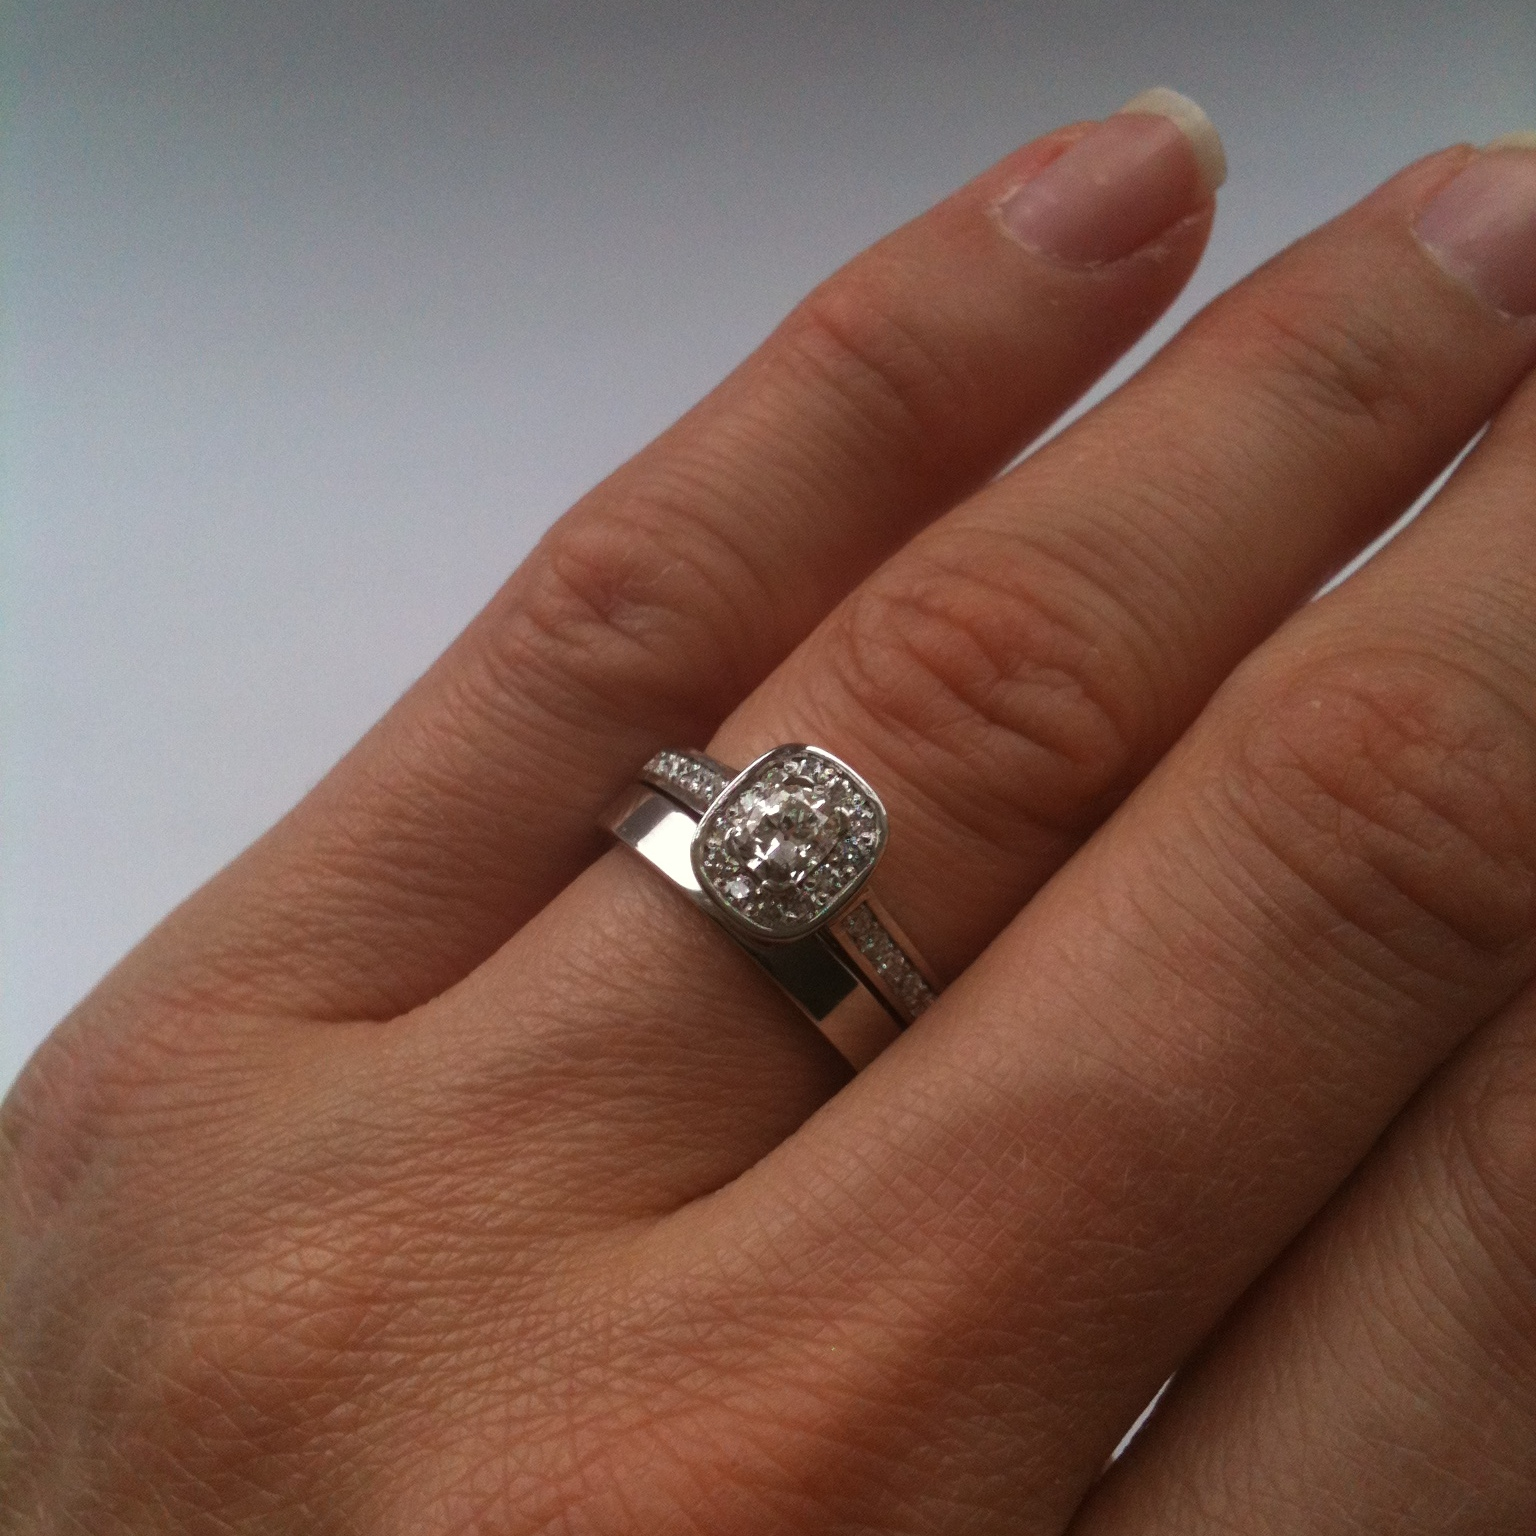 Diamonds And Rings The Online Jeweller Introduce New